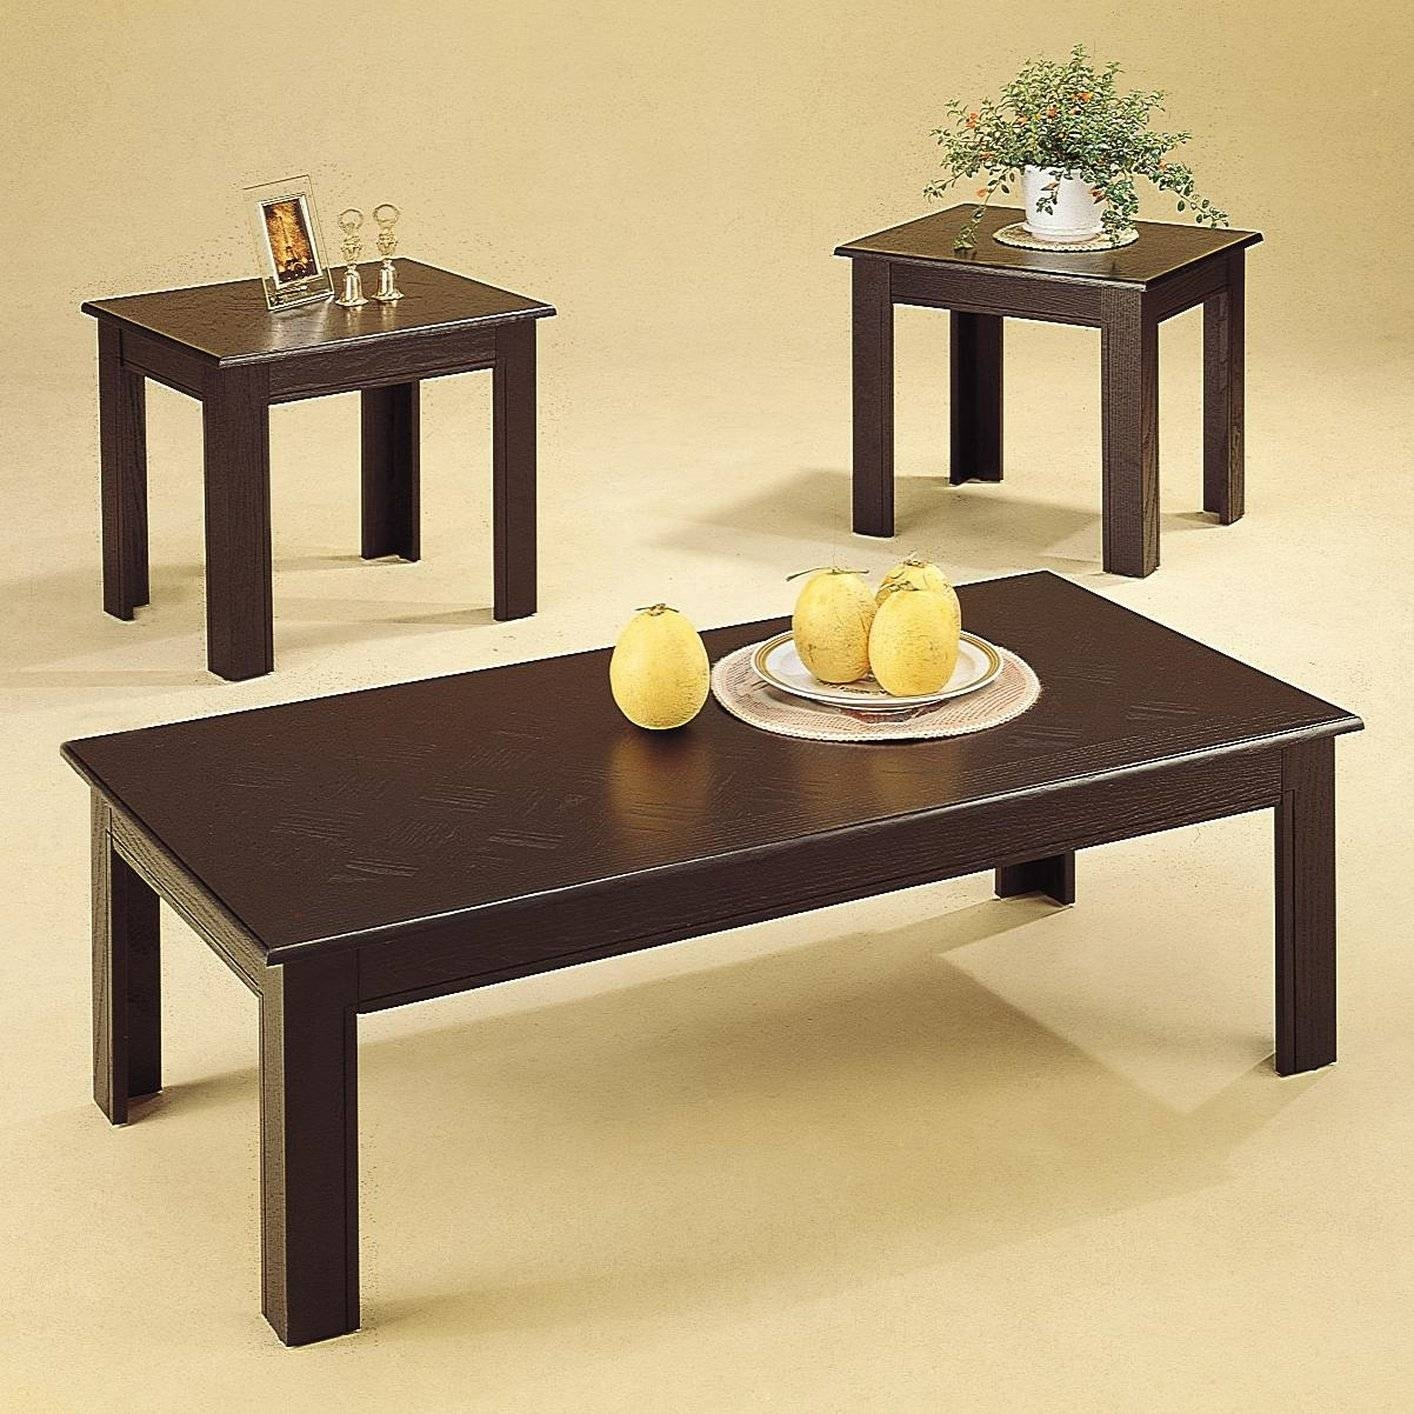 Acosta Black Wood Coffee Table Set - Steal-A-Sofa Furniture Outlet intended for Black Wood Coffee Tables (Image 1 of 30)